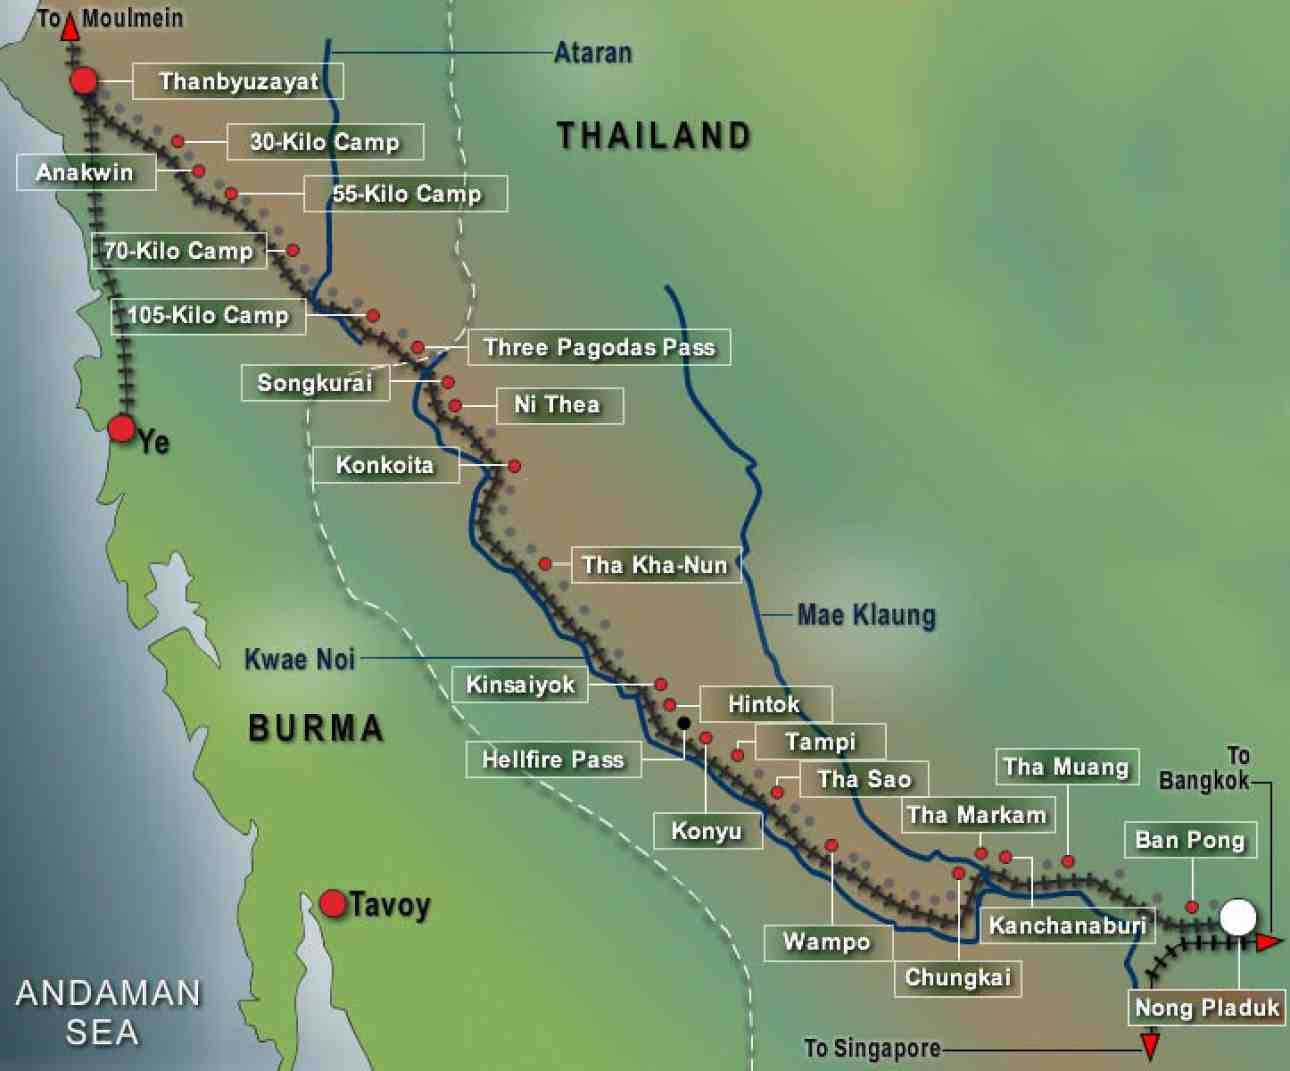 thai-burma-rail-map_en SOURCE ANZAC PORTAL